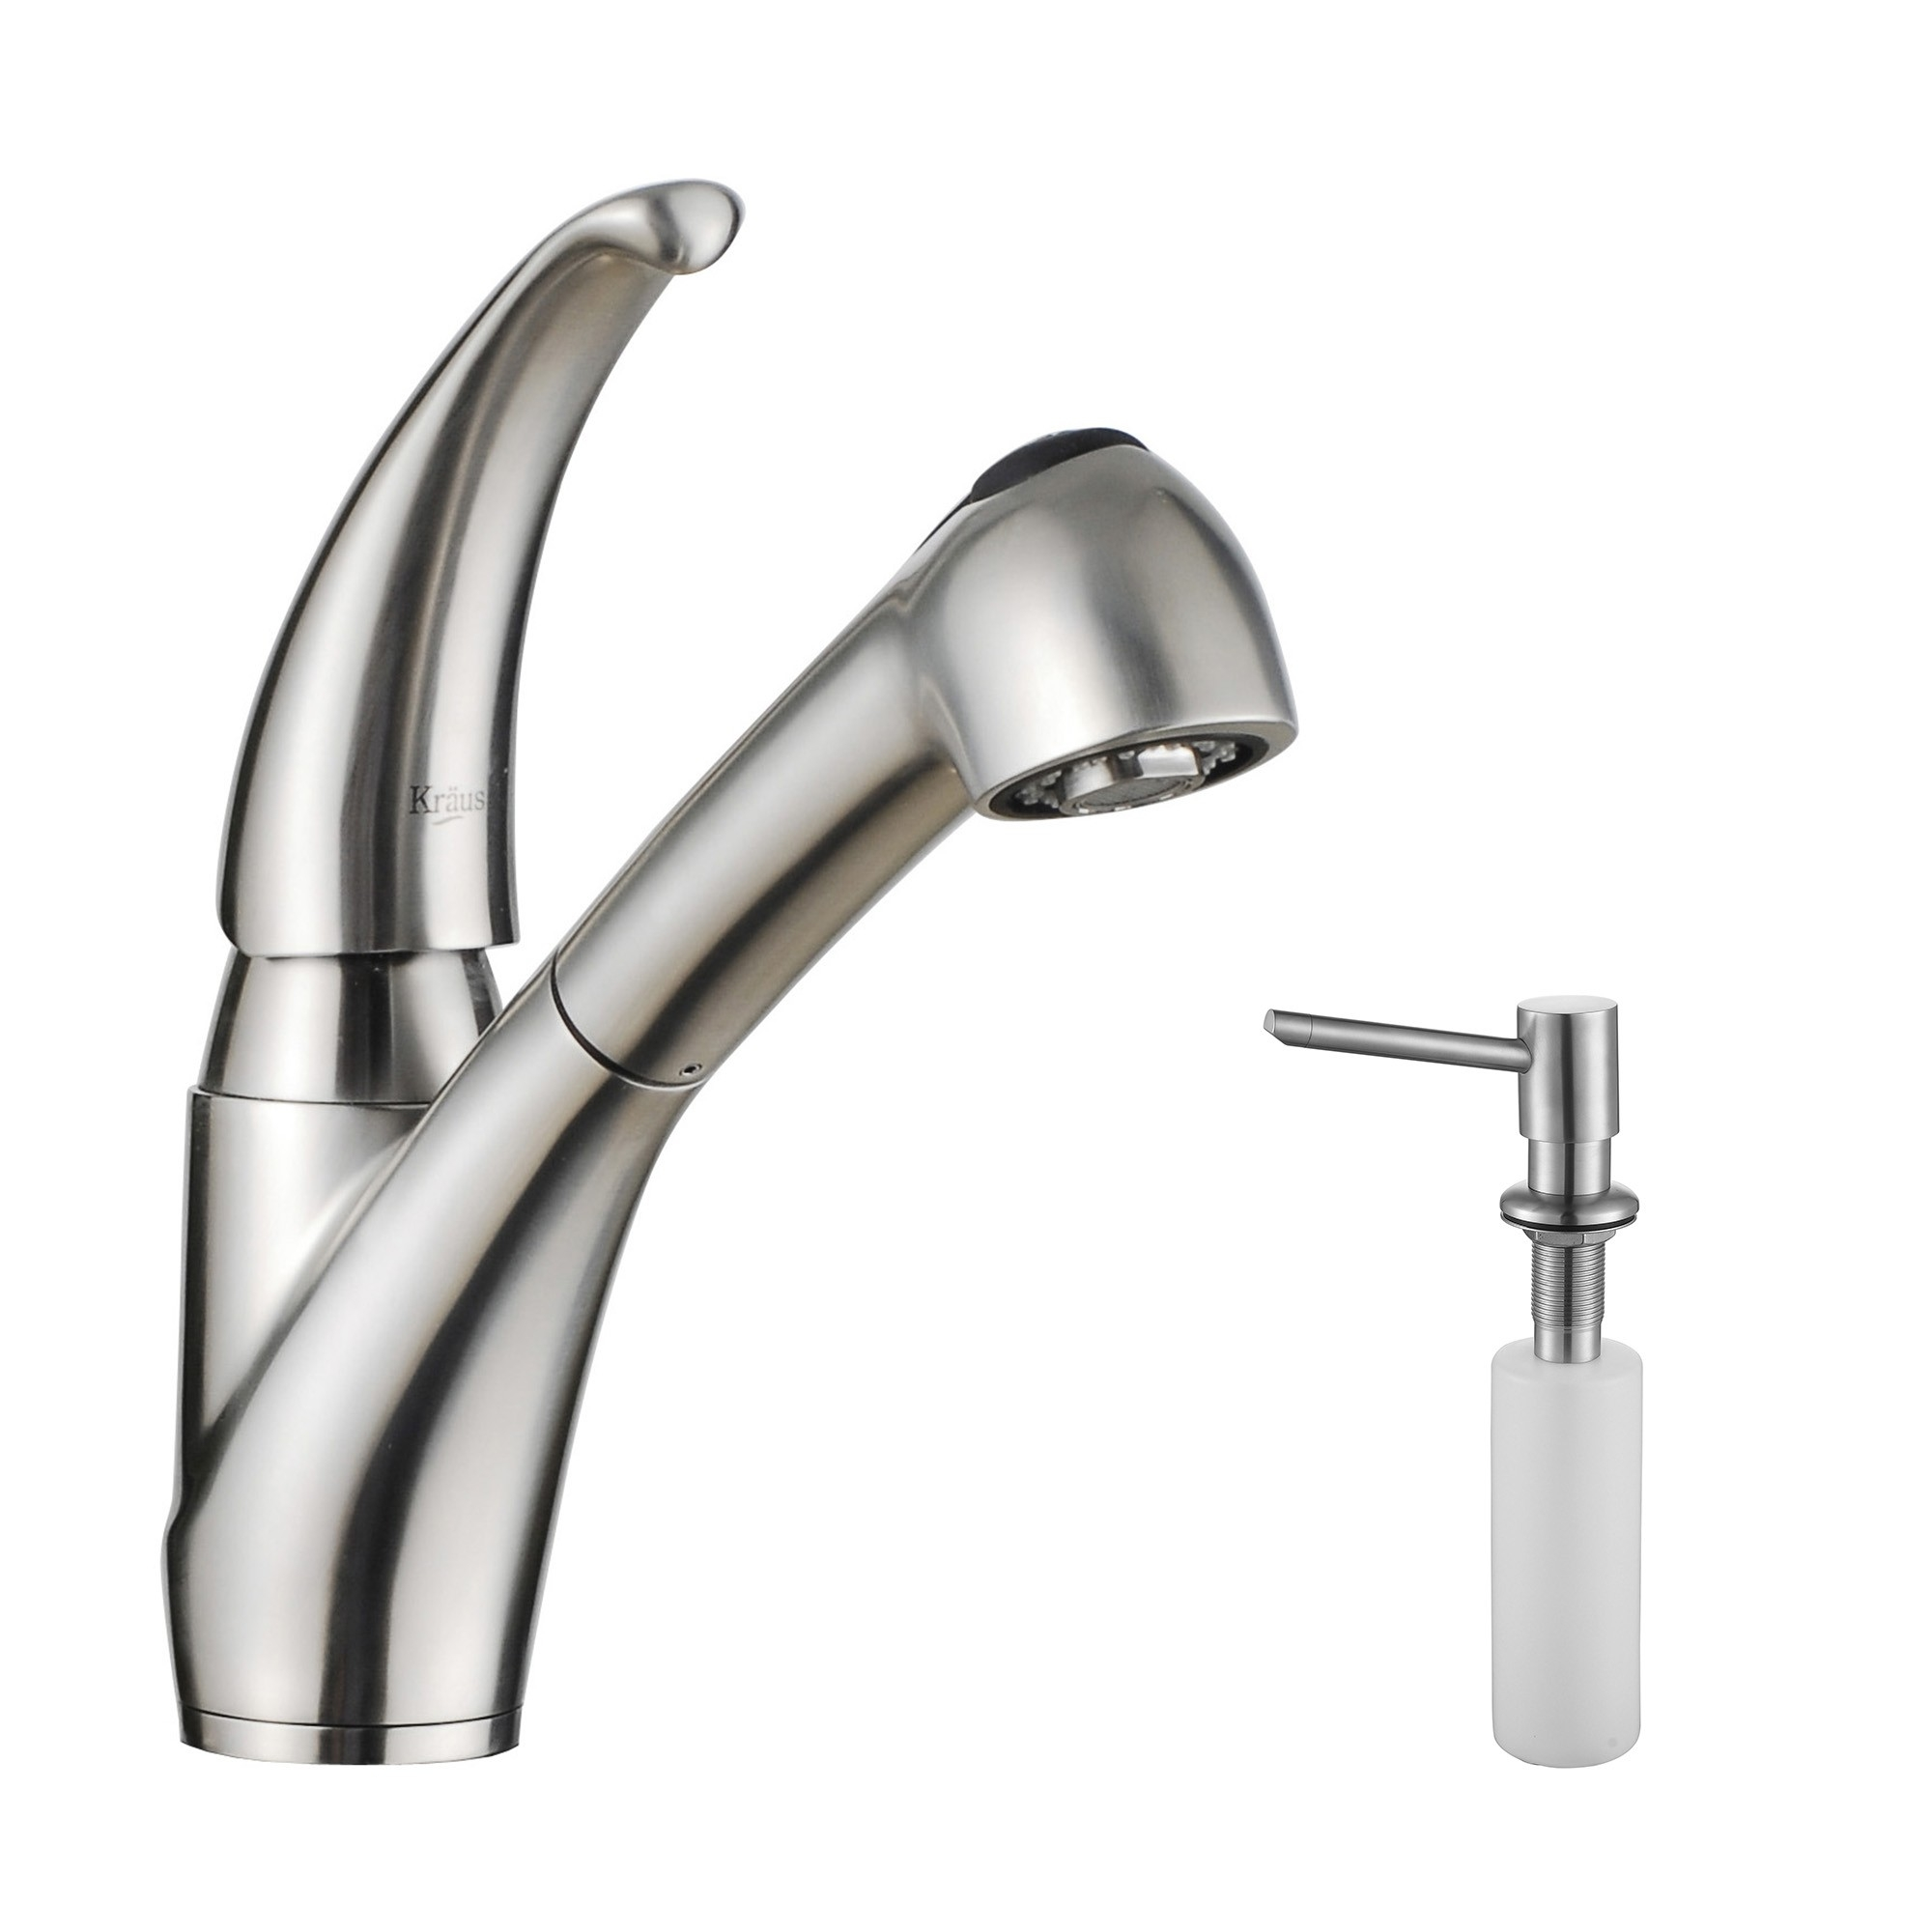 Ideas, one hole kitchen faucet without pull out one hole kitchen faucet without pull out kitchen faucet set kraususa 2000 x 2000  .